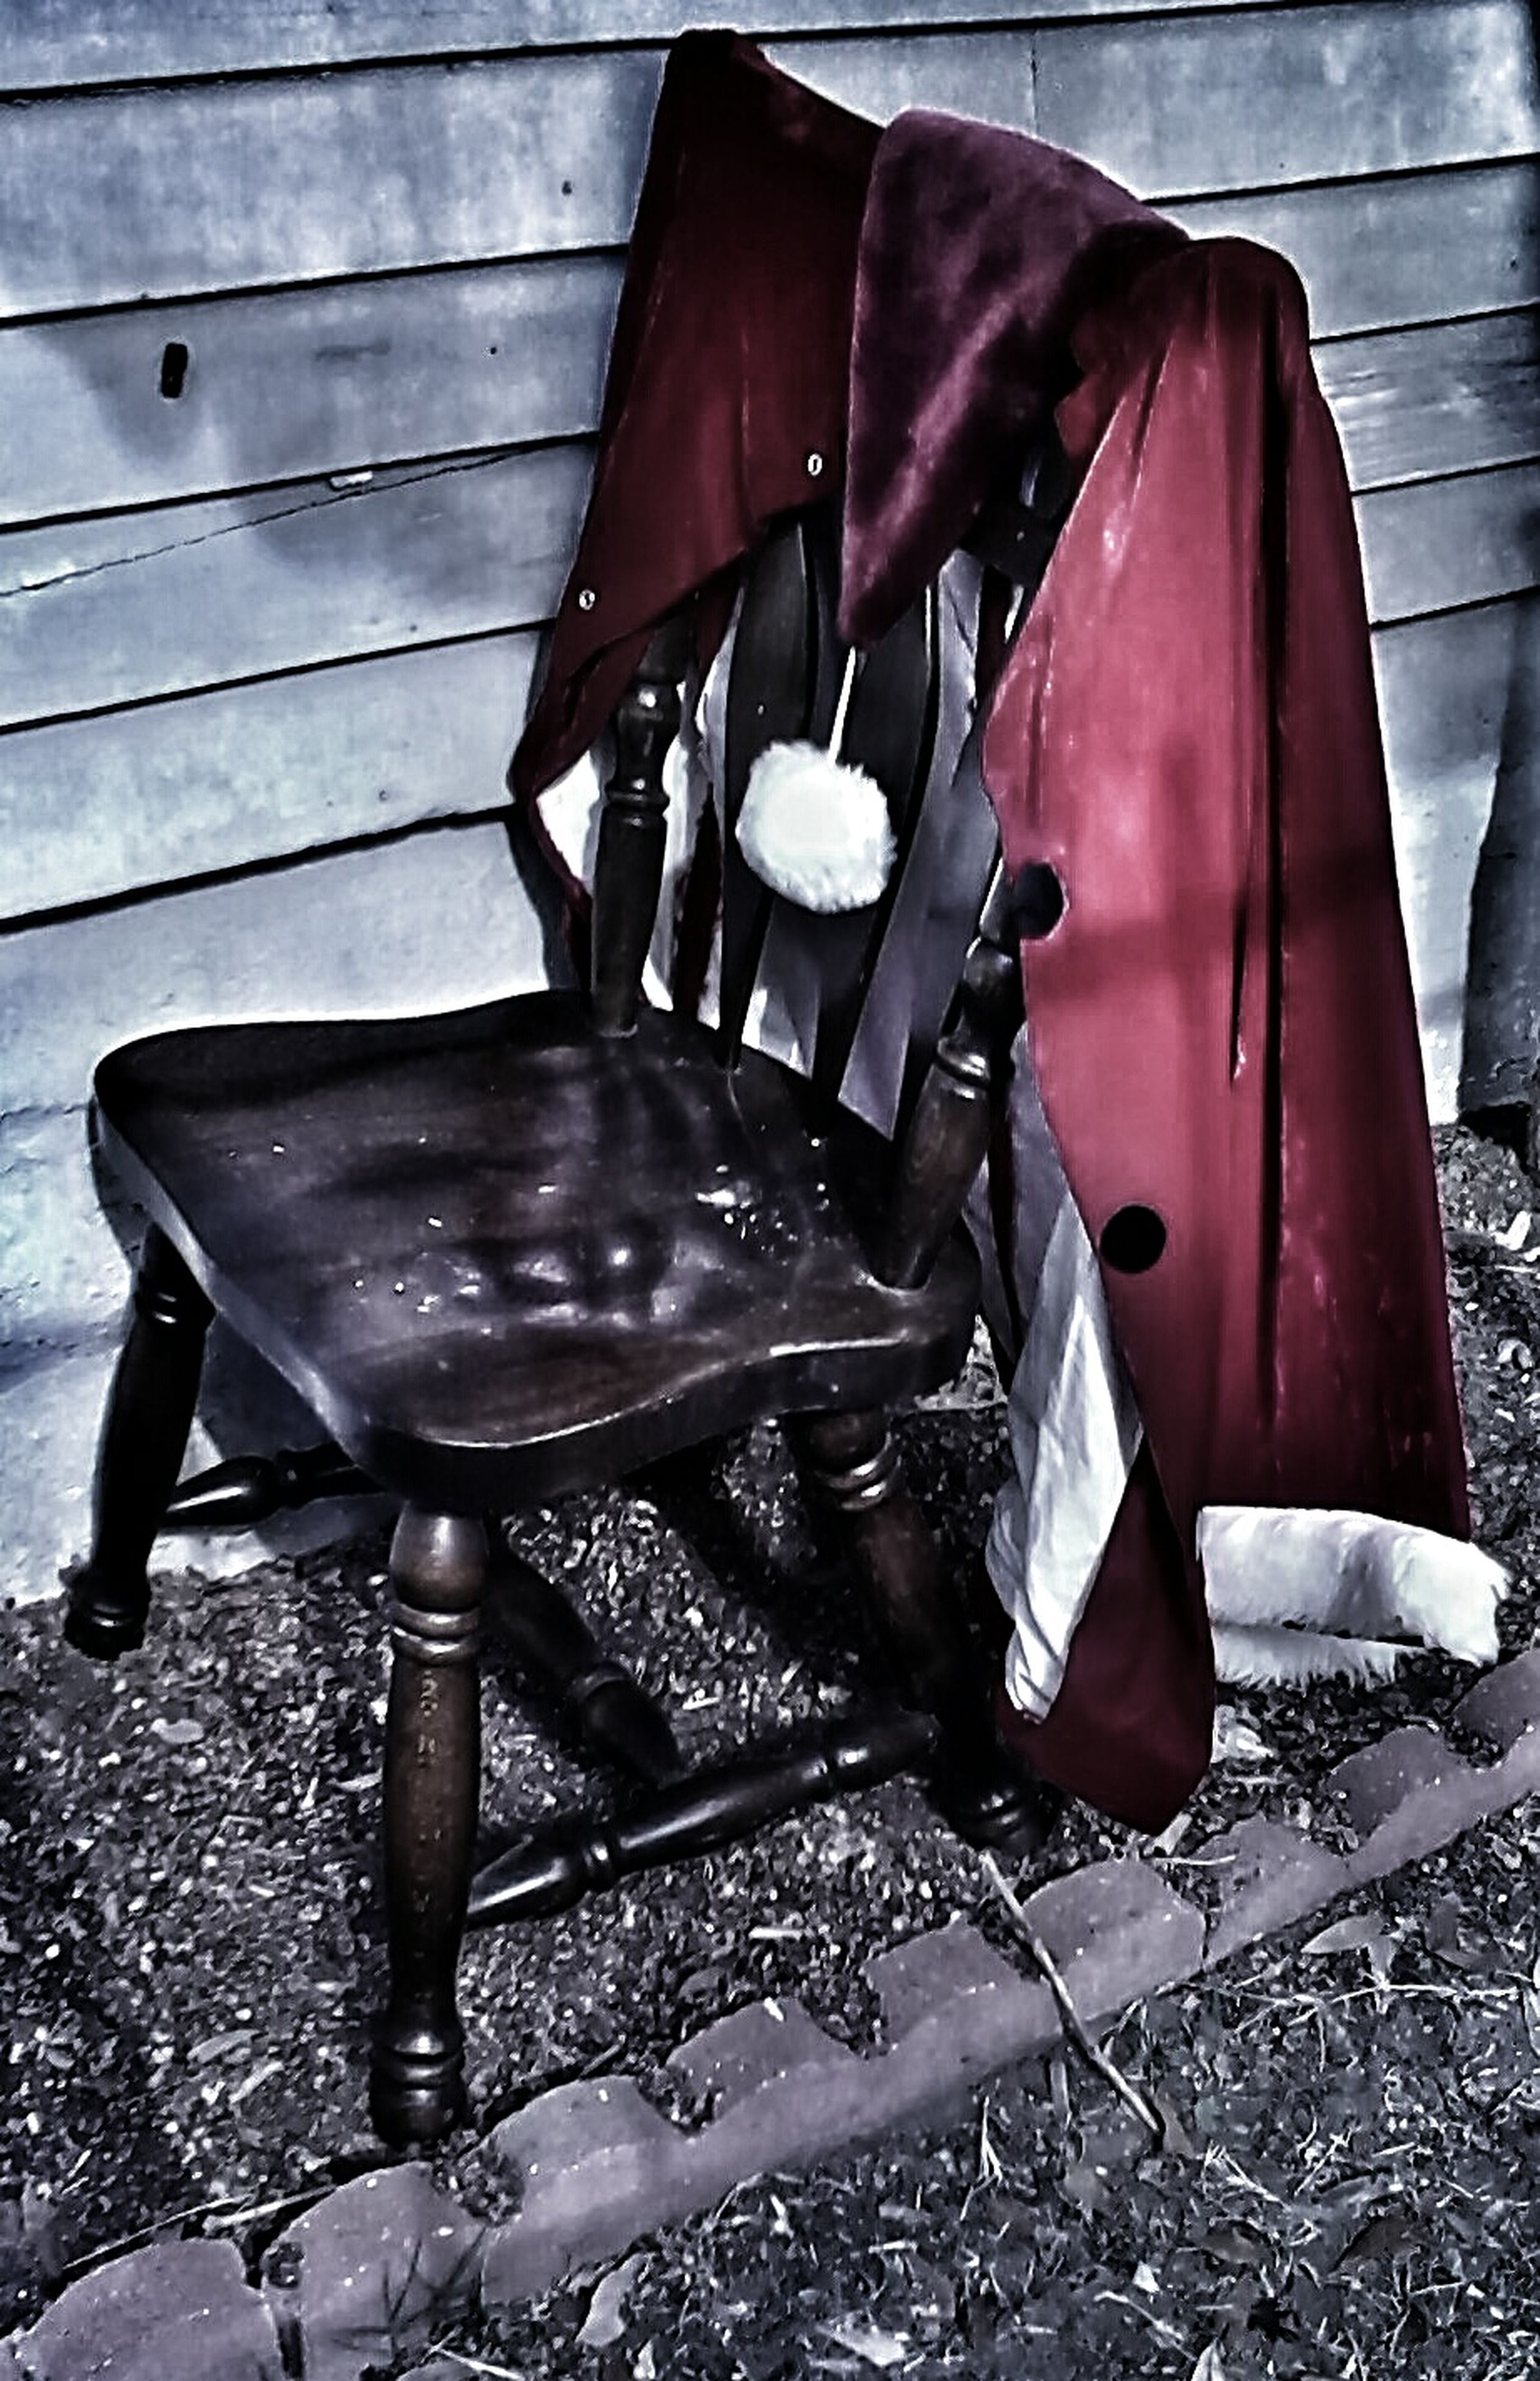 chair, sunlight, absence, table, hanging, day, outdoors, shadow, no people, furniture, still life, empty, seat, abandoned, close-up, wood - material, old, red, metal, old-fashioned